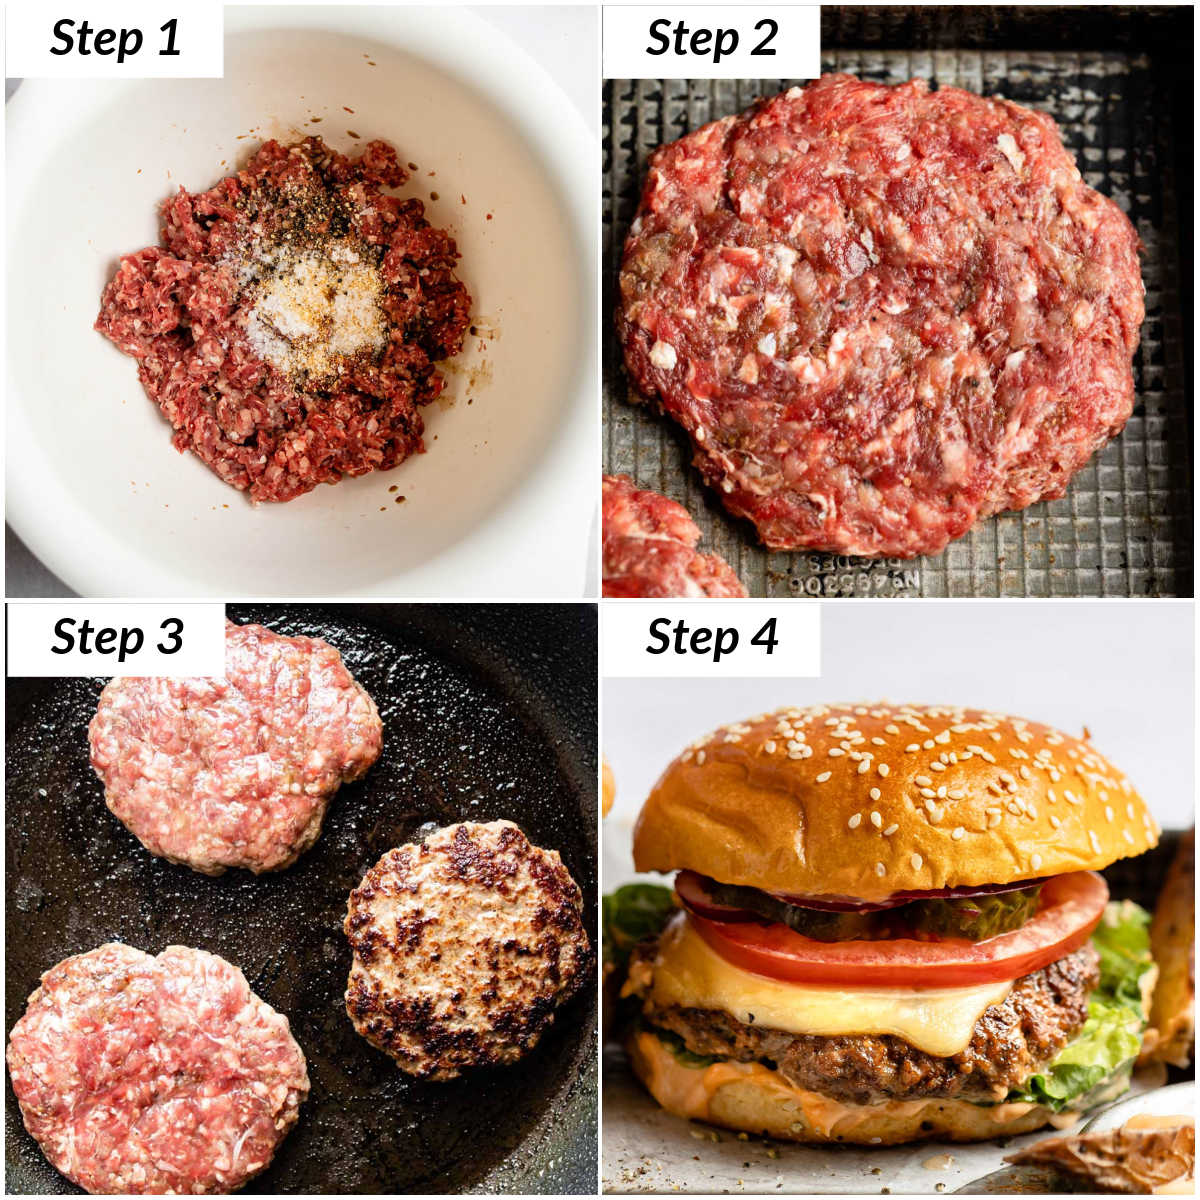 image collage showing the steps for making venison burgers